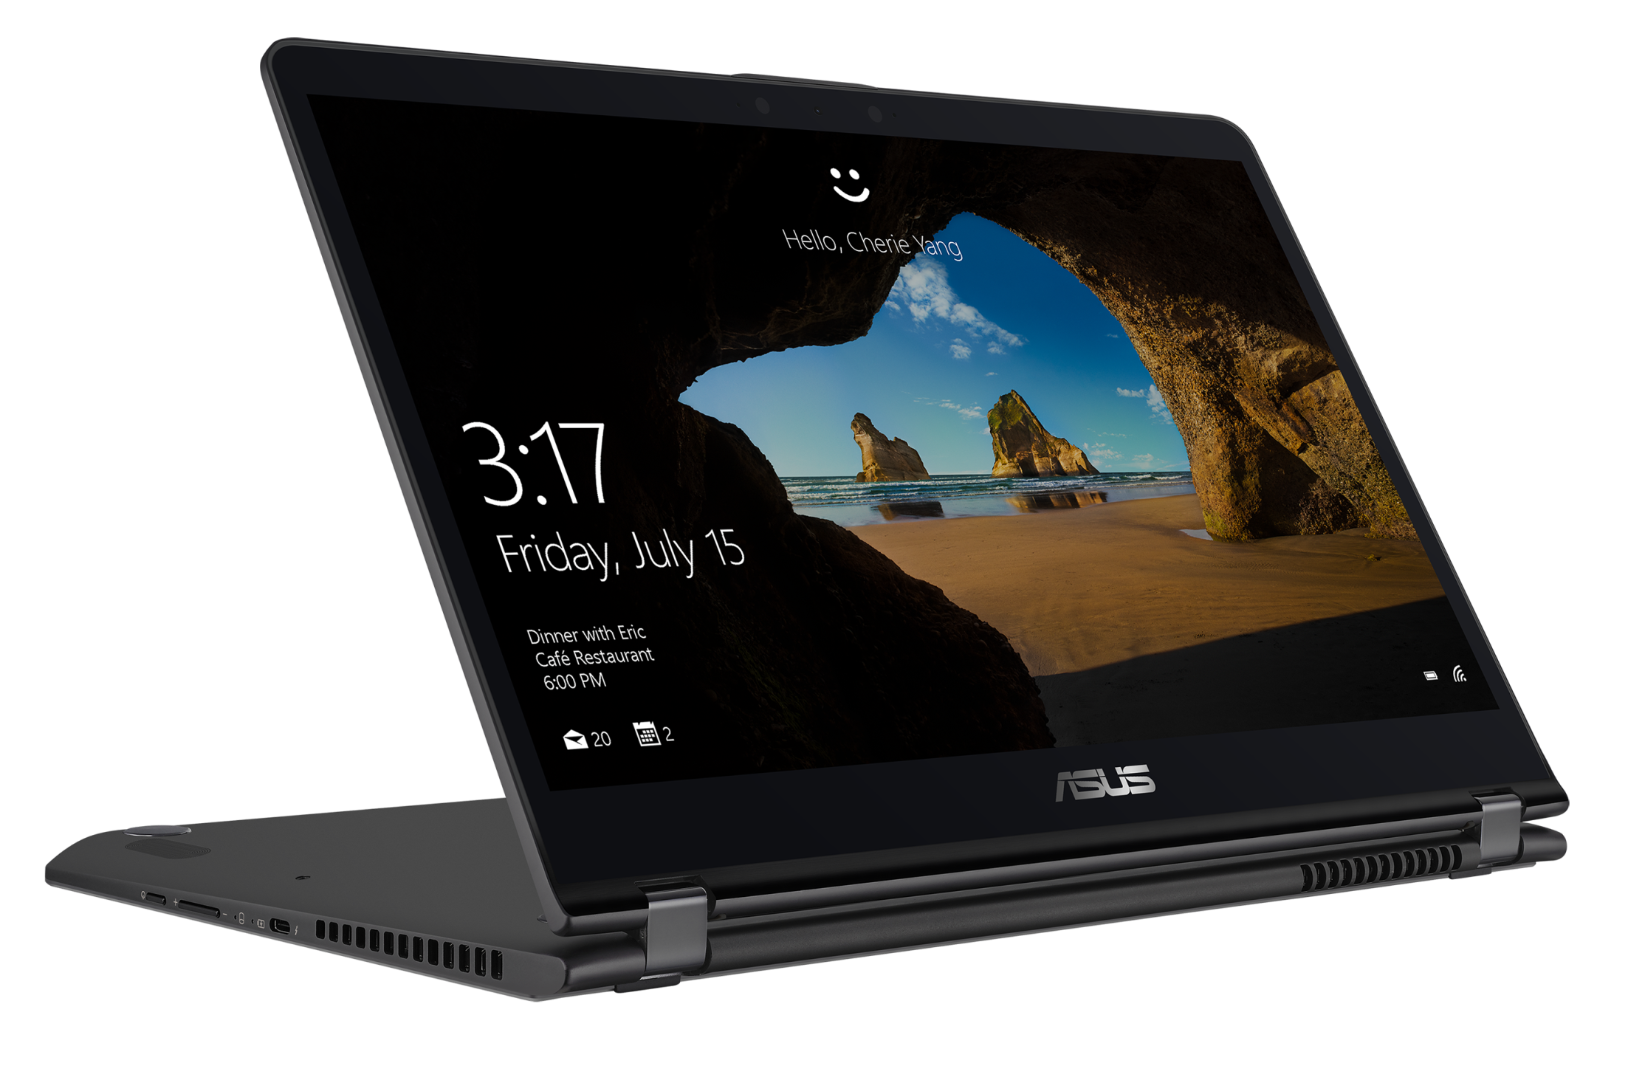 New Asus Laptops 2017: Luxury laptops steal the show at IFA